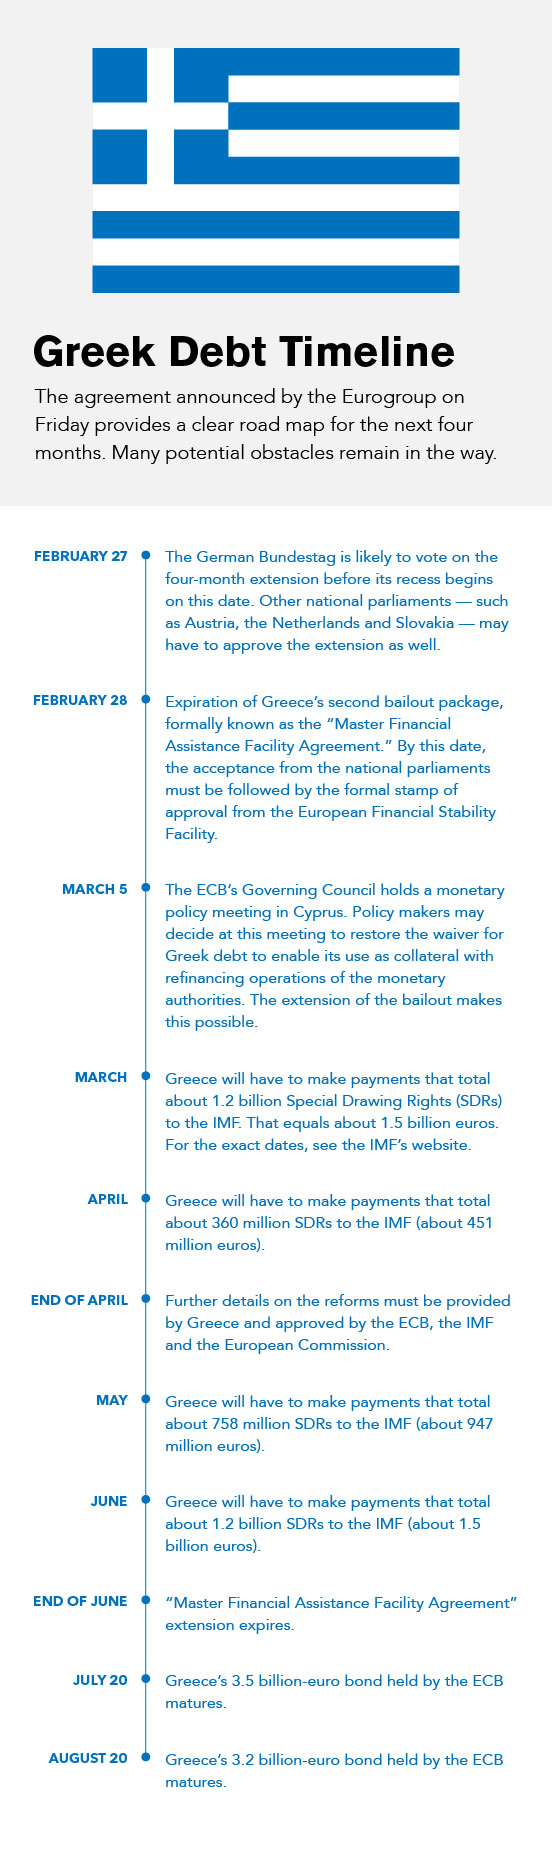 Whats Next For Greece The Debt Timeline Bloomberg Professional